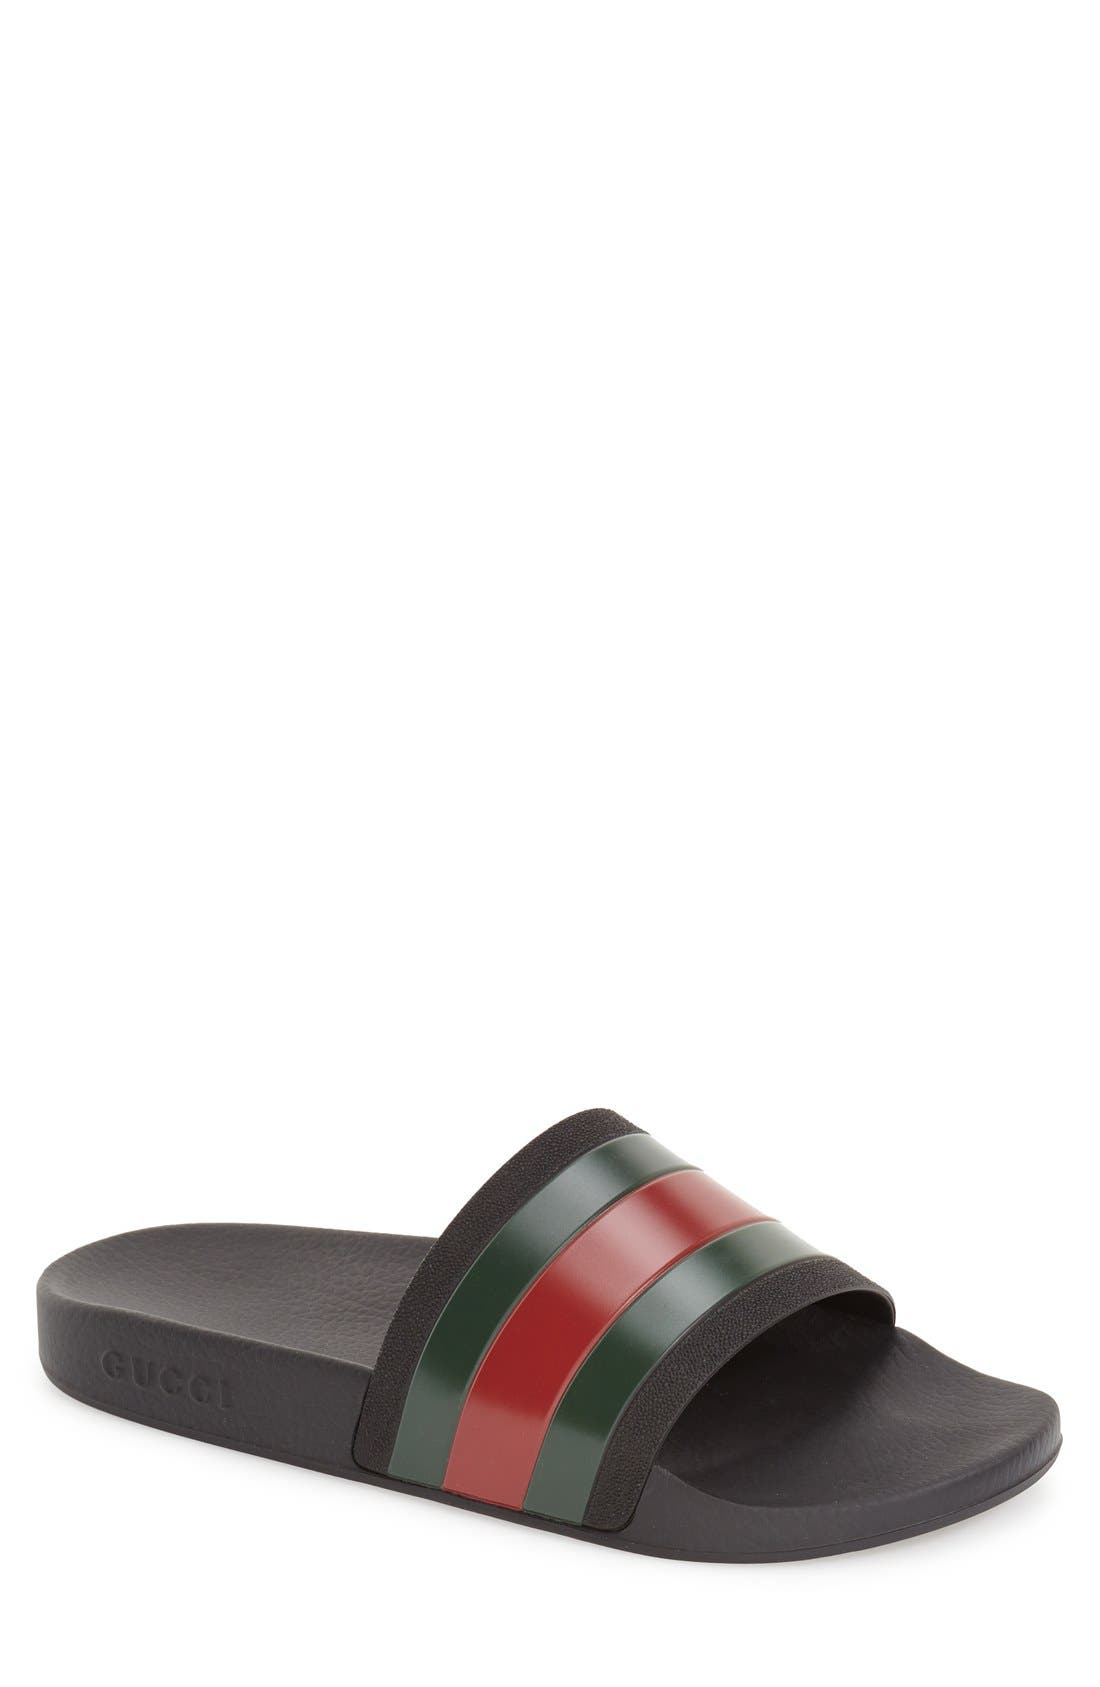 Alternate Image 1 Selected - Gucci 'Pursuit '72 Slide' Sandal (Men)